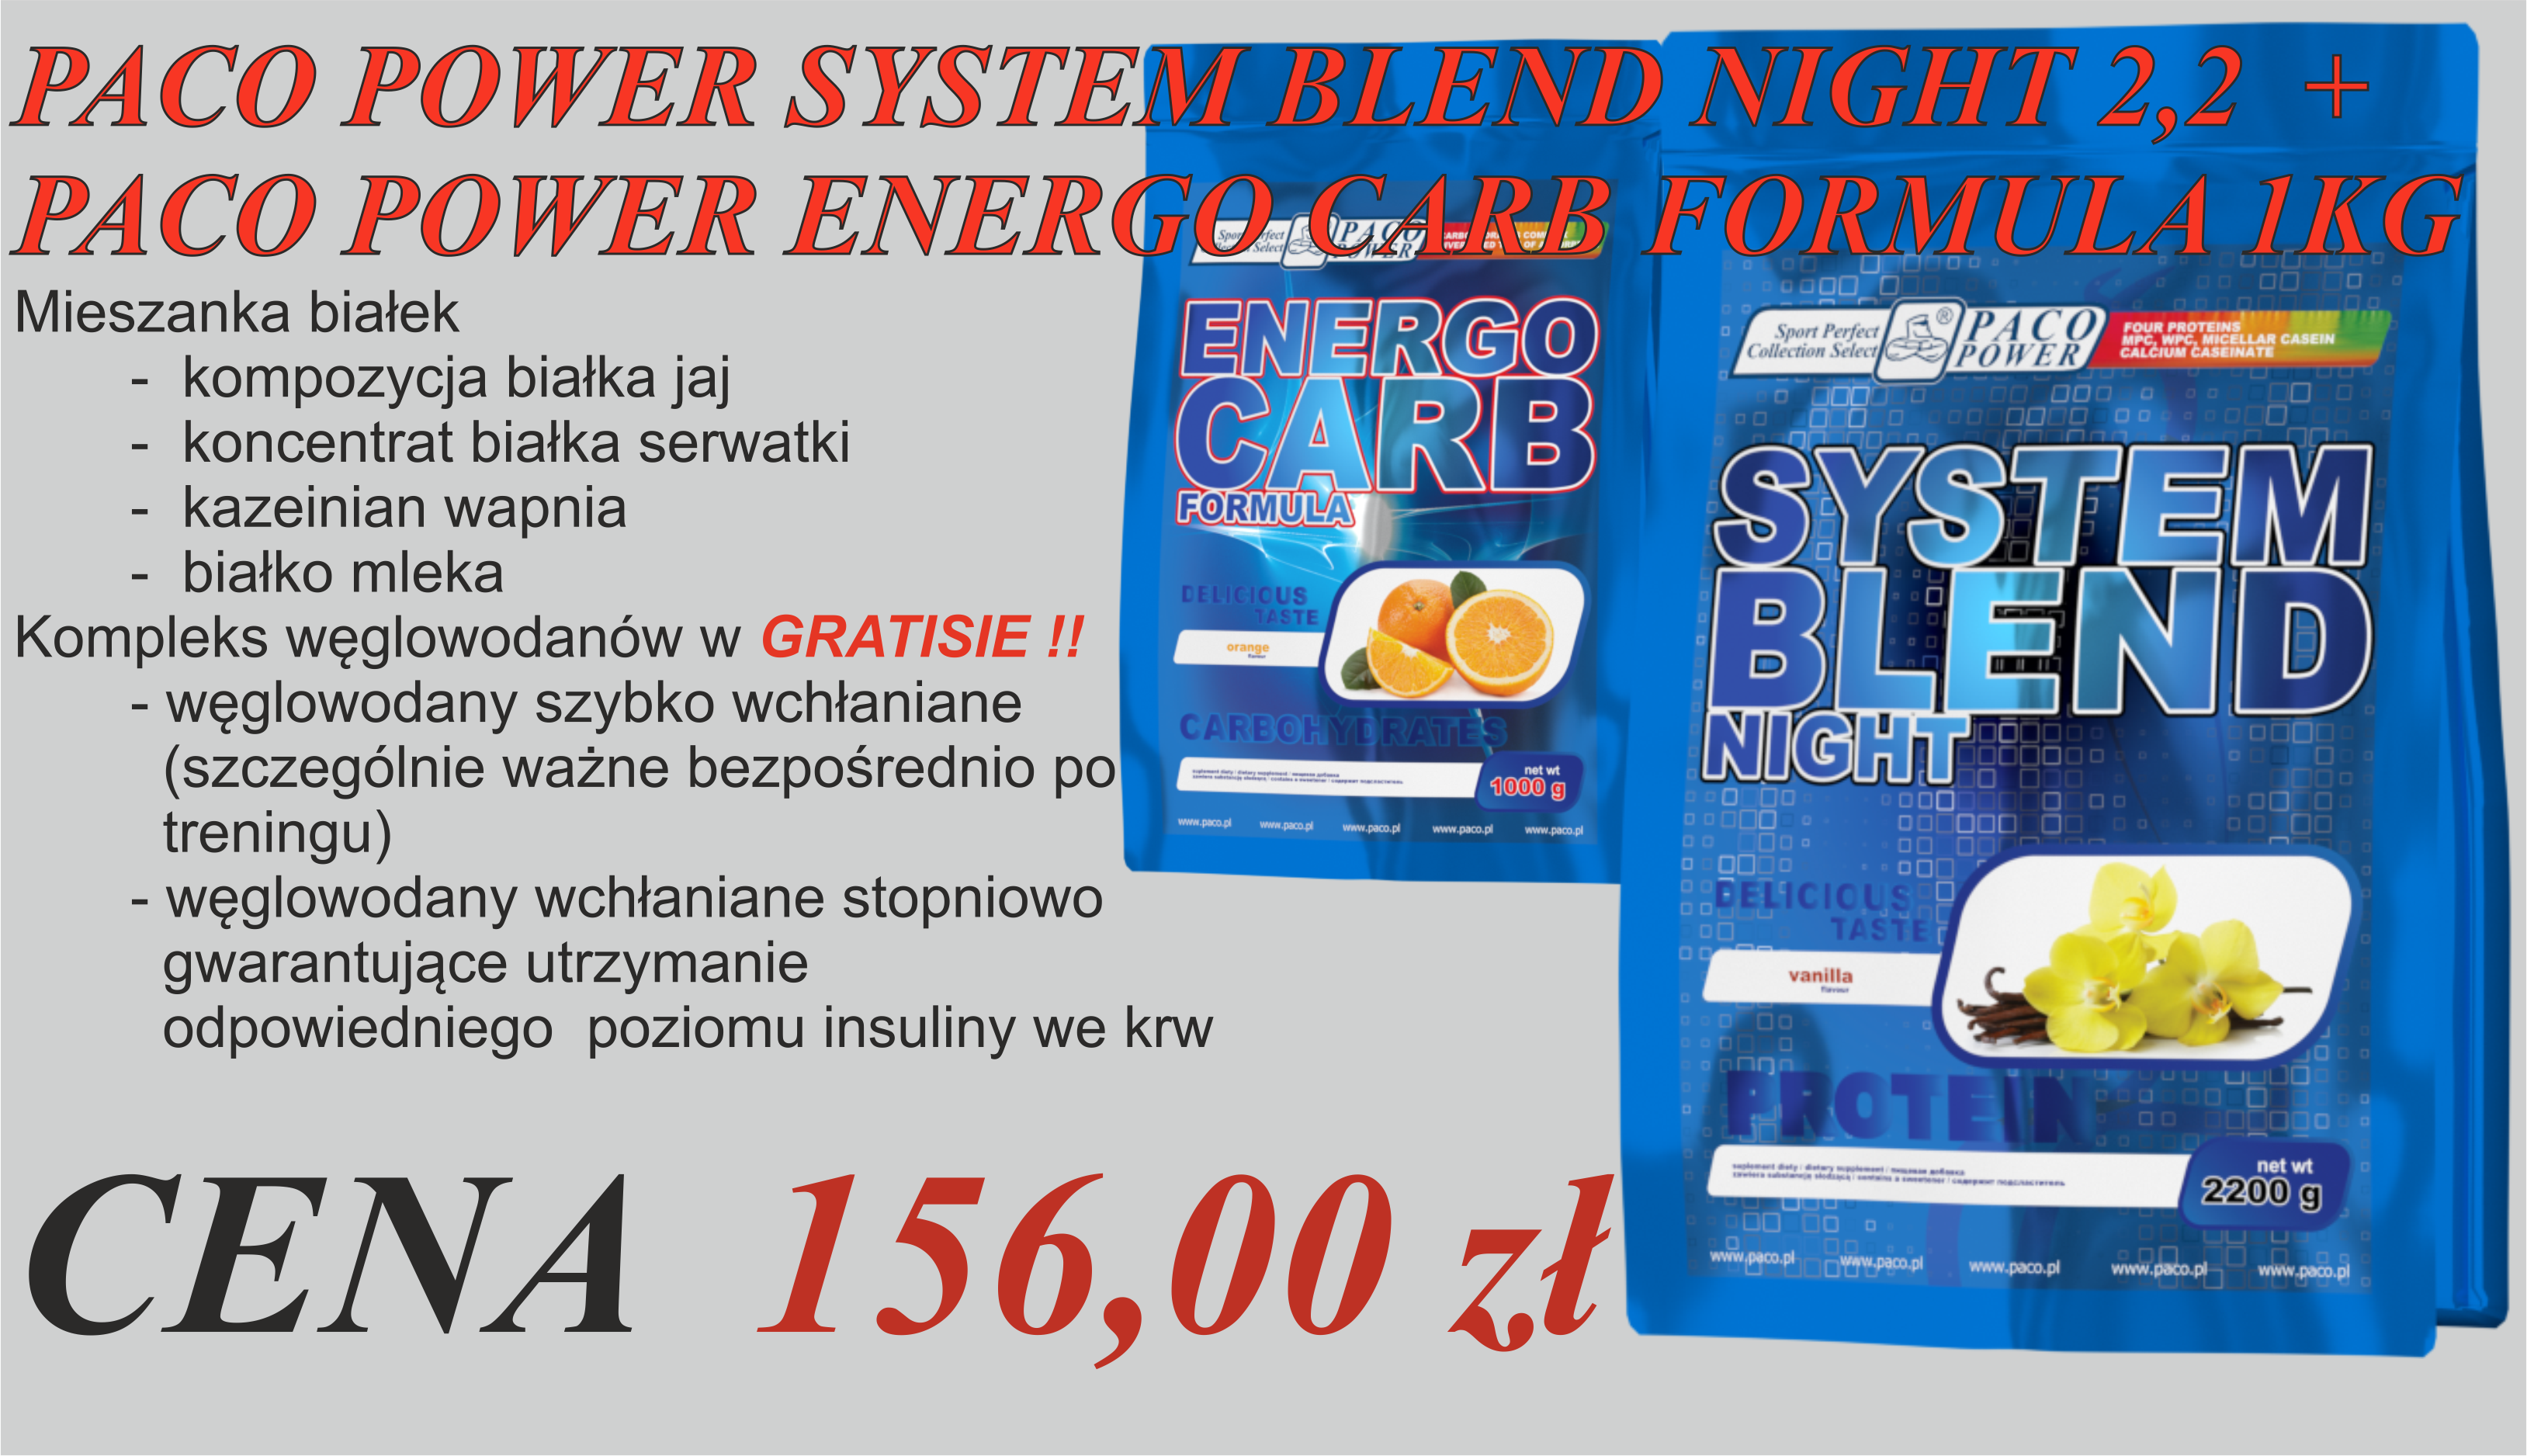 PACO POWER SYSTEM BLEND NIGHT